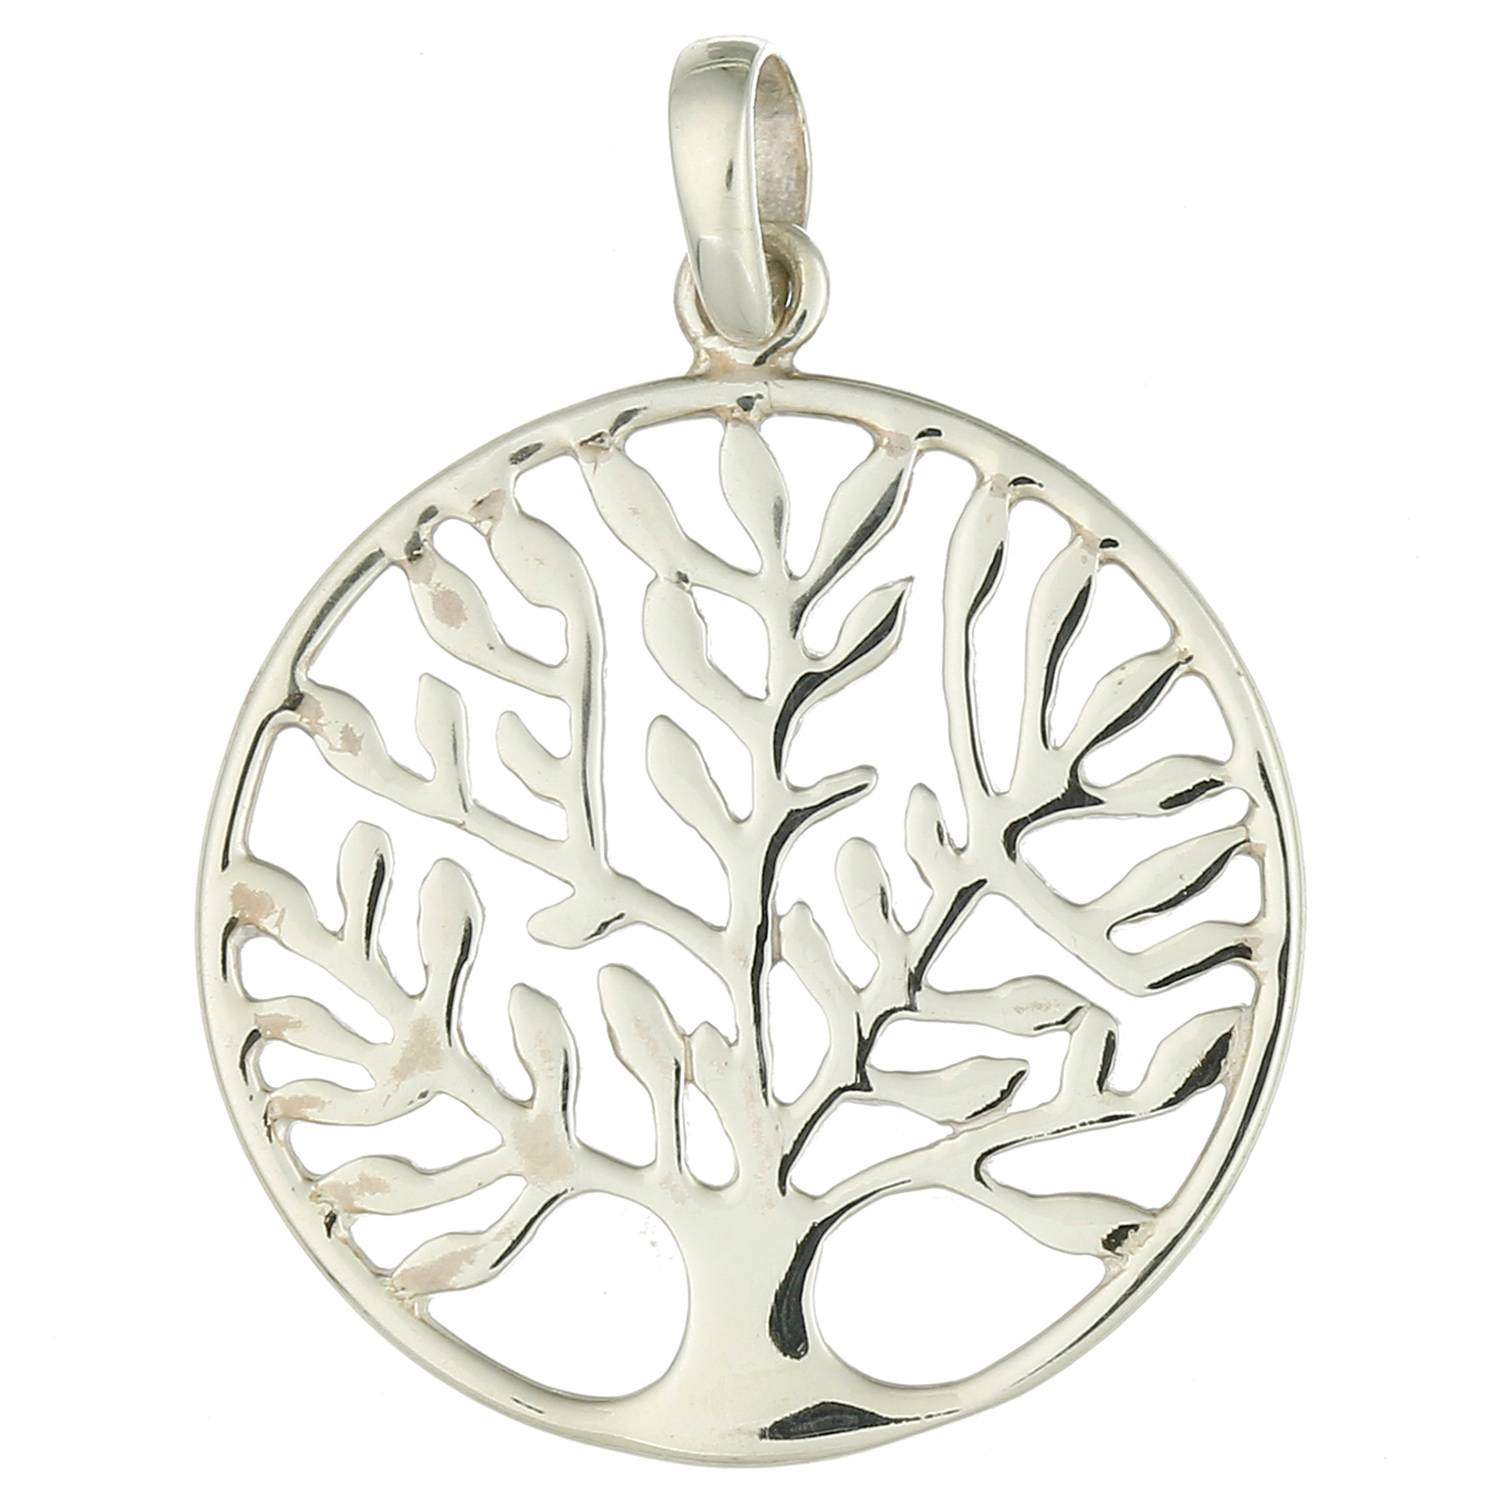 Selling Wholesale Silver Jewelry